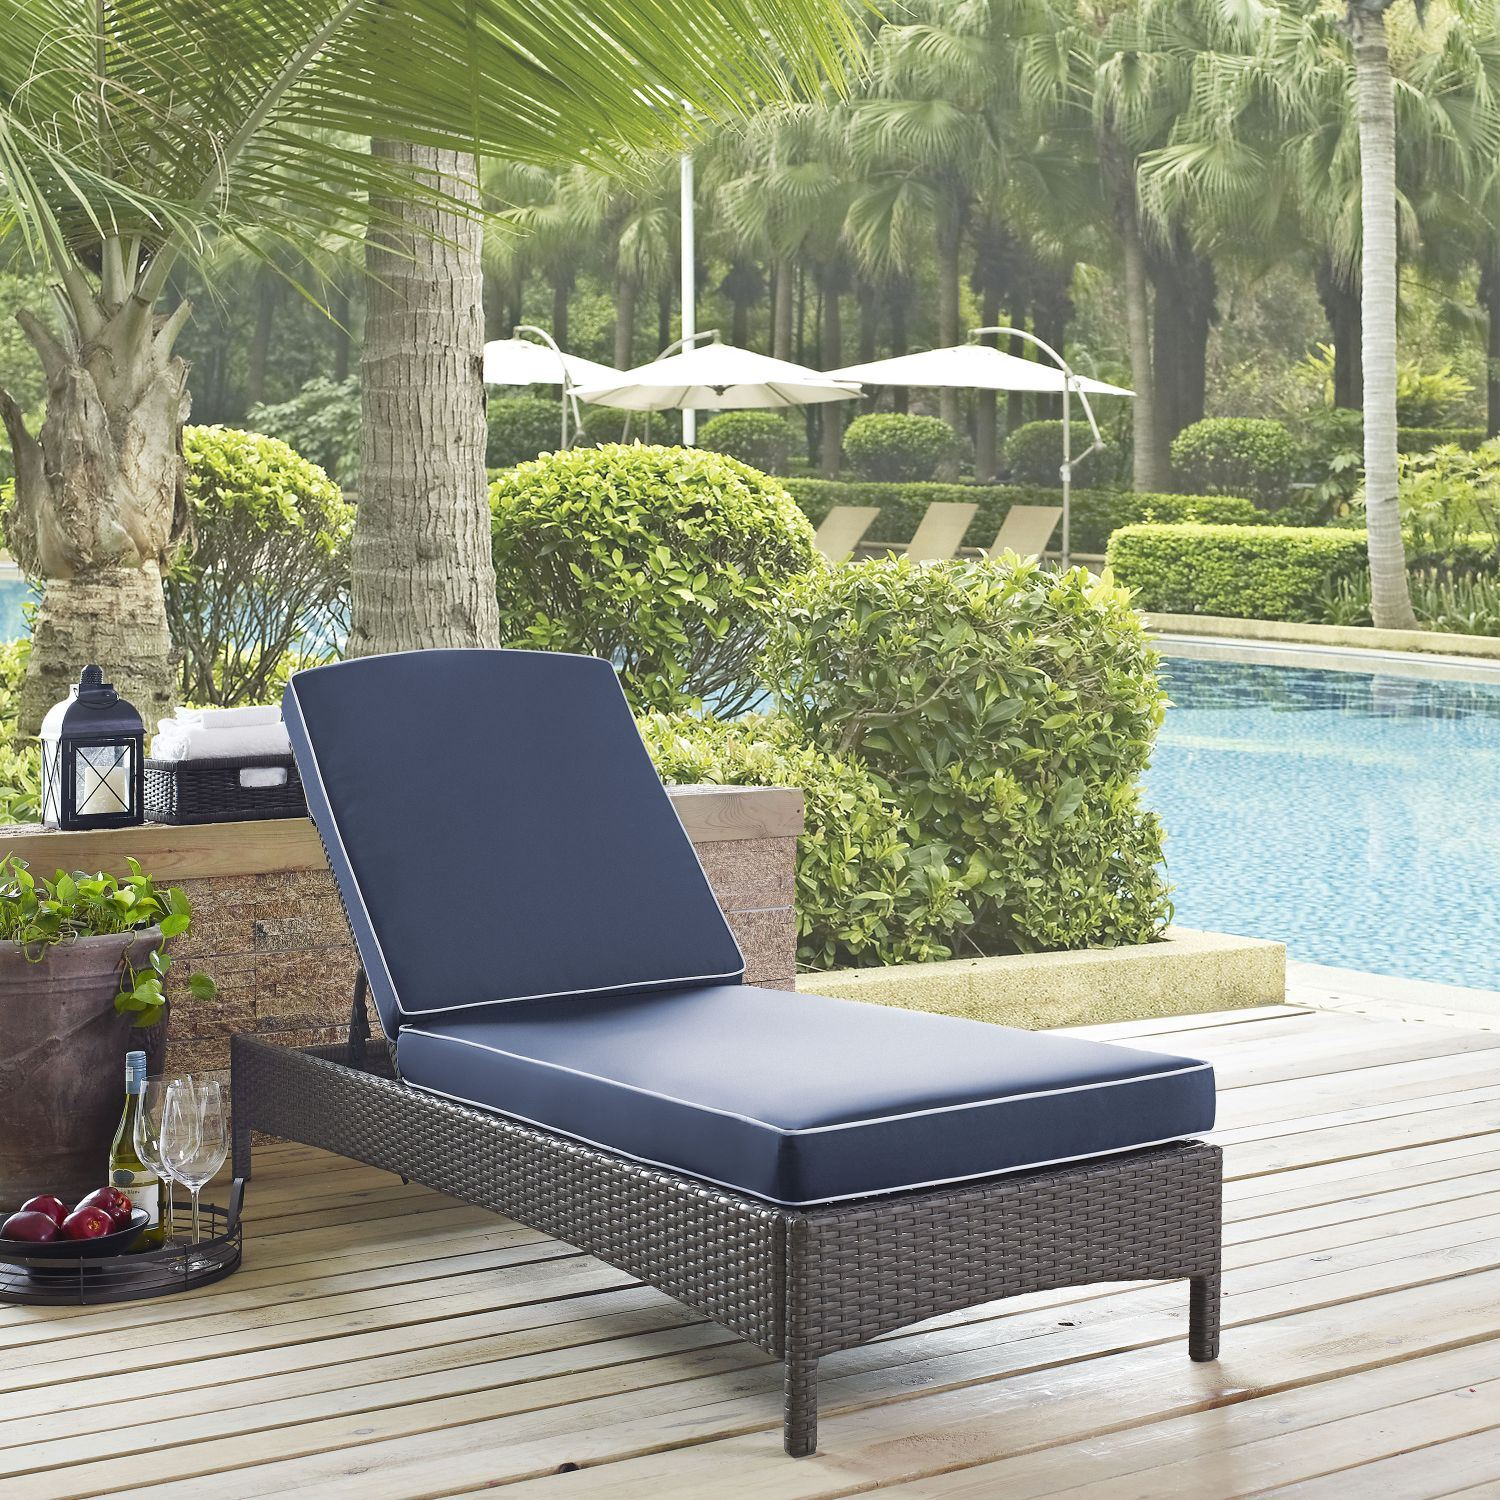 wicker chaise lounge chairs outdoor swing chair metal stand palm harbor d co7122wg nv crosley picture of